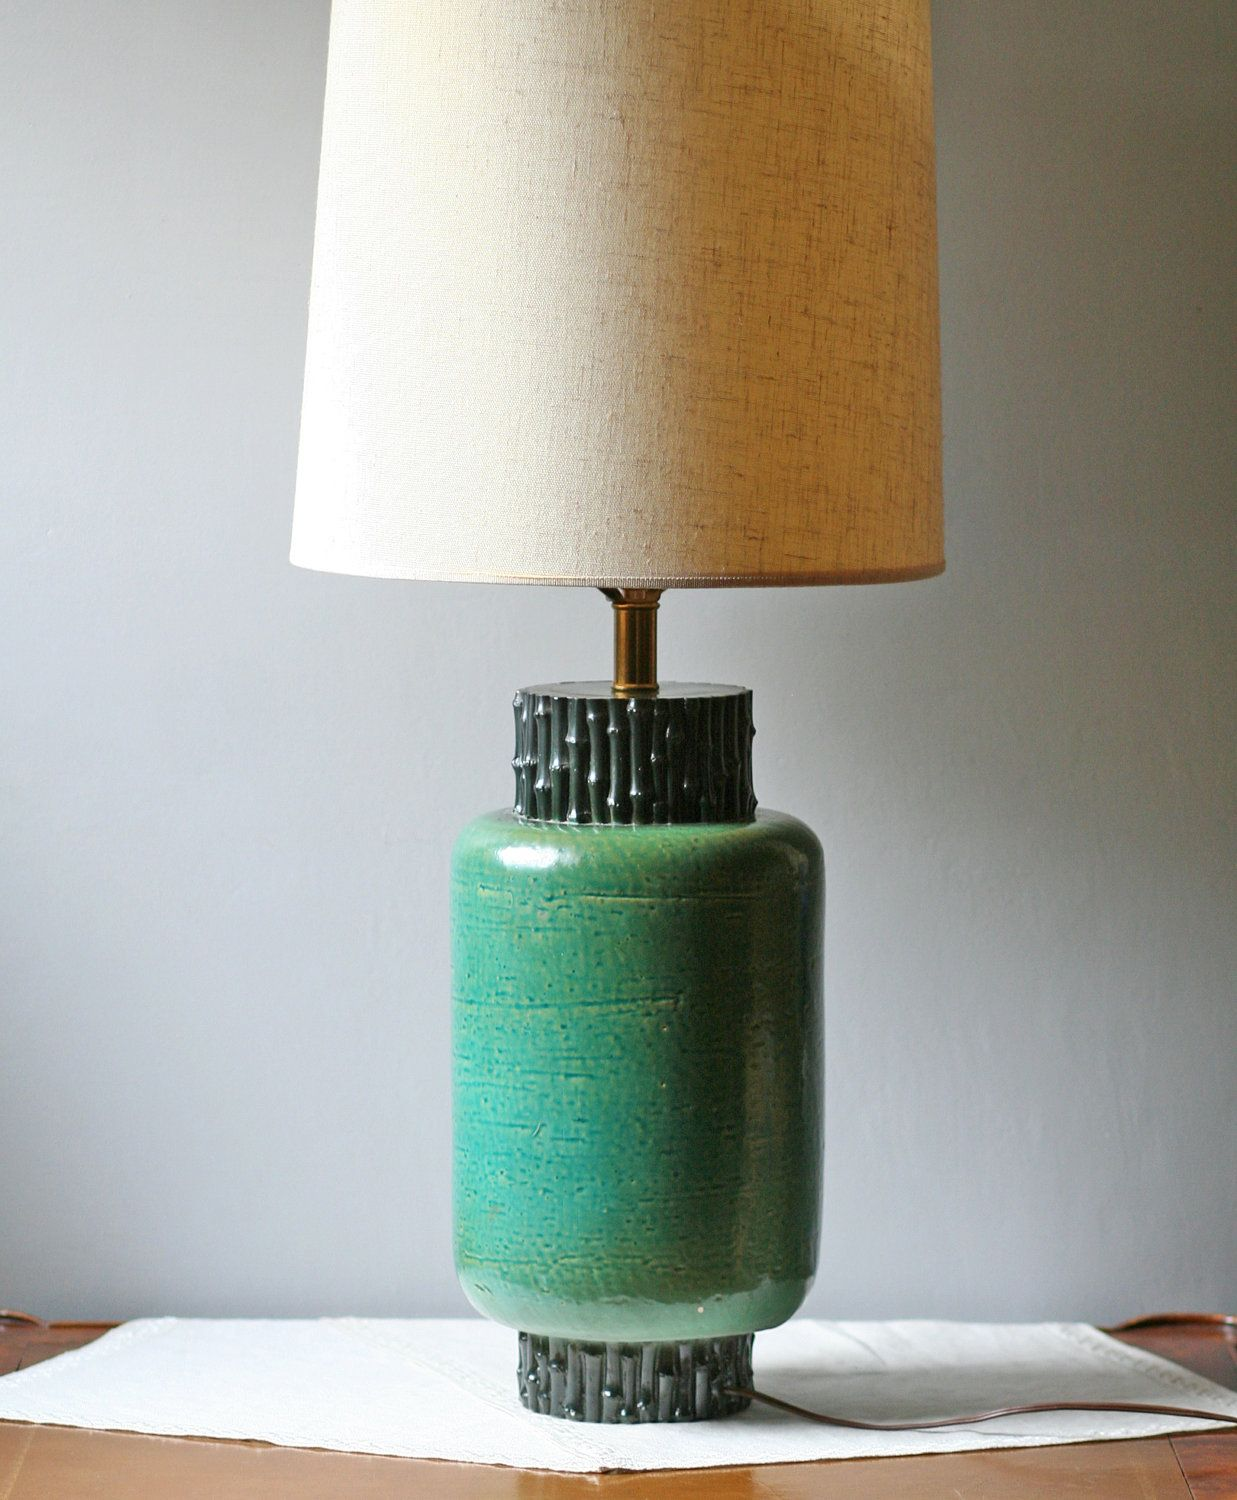 Emerald green table lamp - Emerald Green Pottery Table Lamp 110 00 Via Etsy